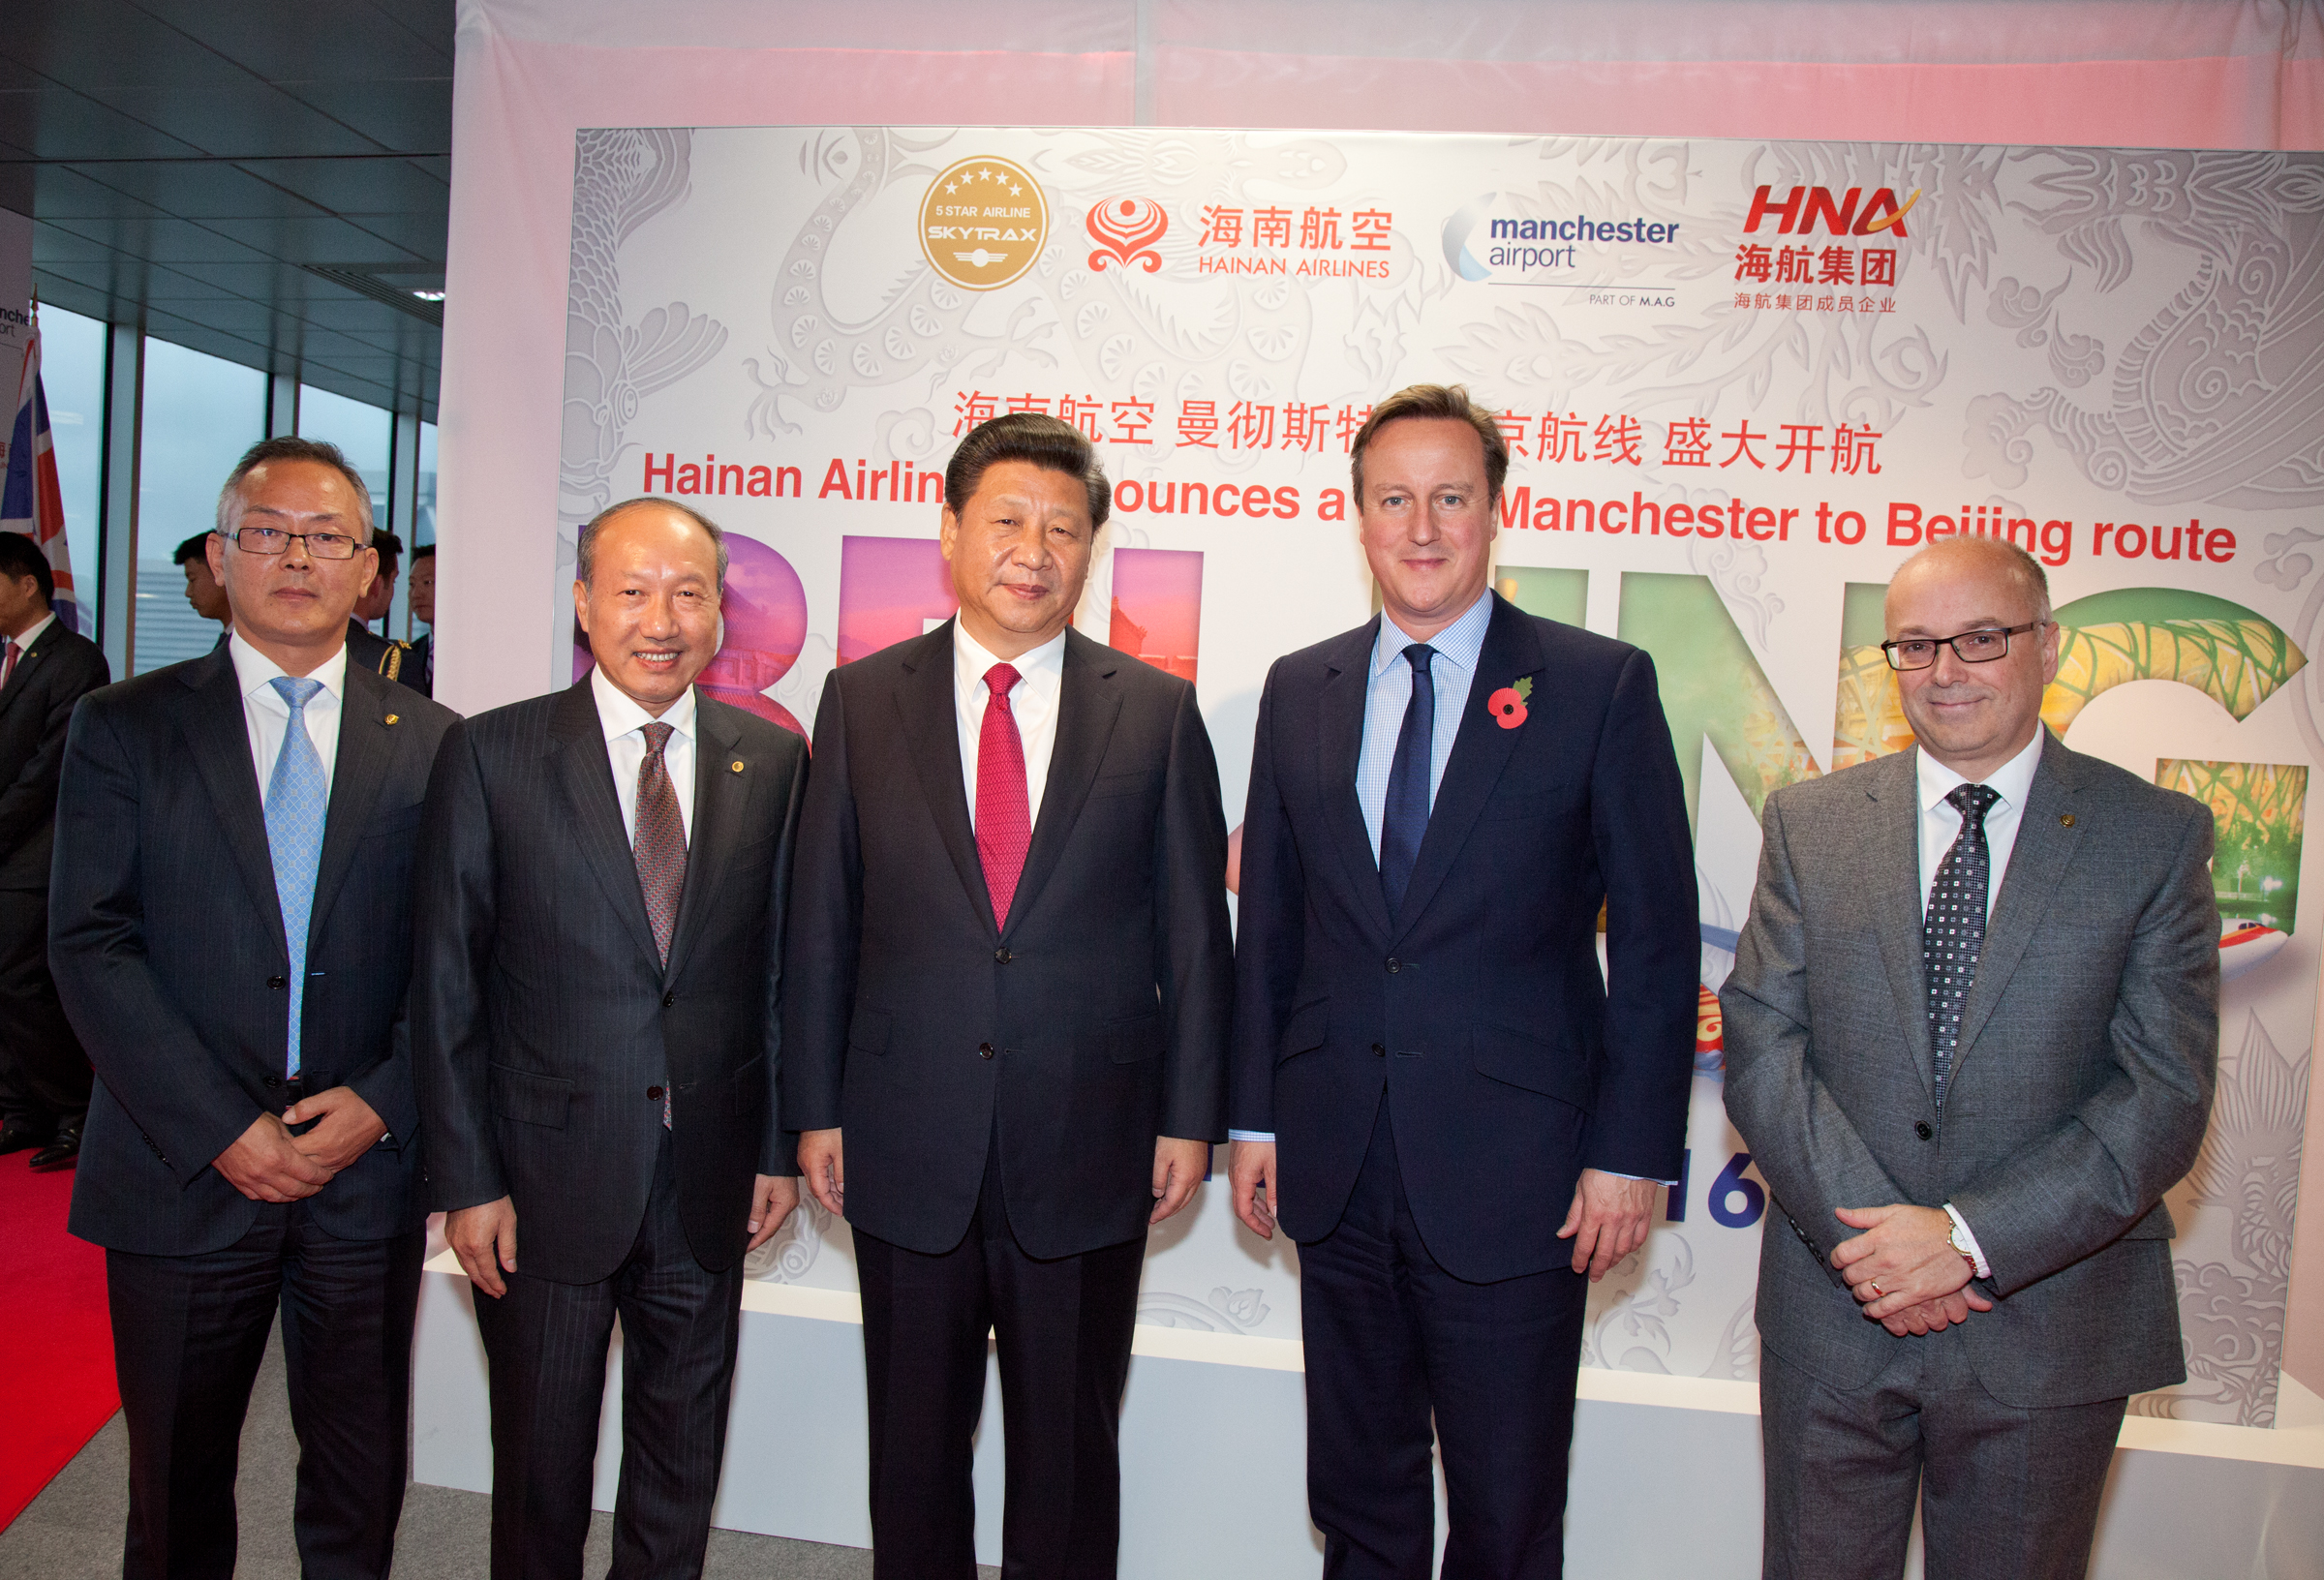 Chinese President Xi Jinping (center) and former British Prime Minister David Cameron (2nd, right) with Chen Feng (2nd, left) and other officials at the launch of HNA's direct flights between Beijing and Manchester. Photo: HNA